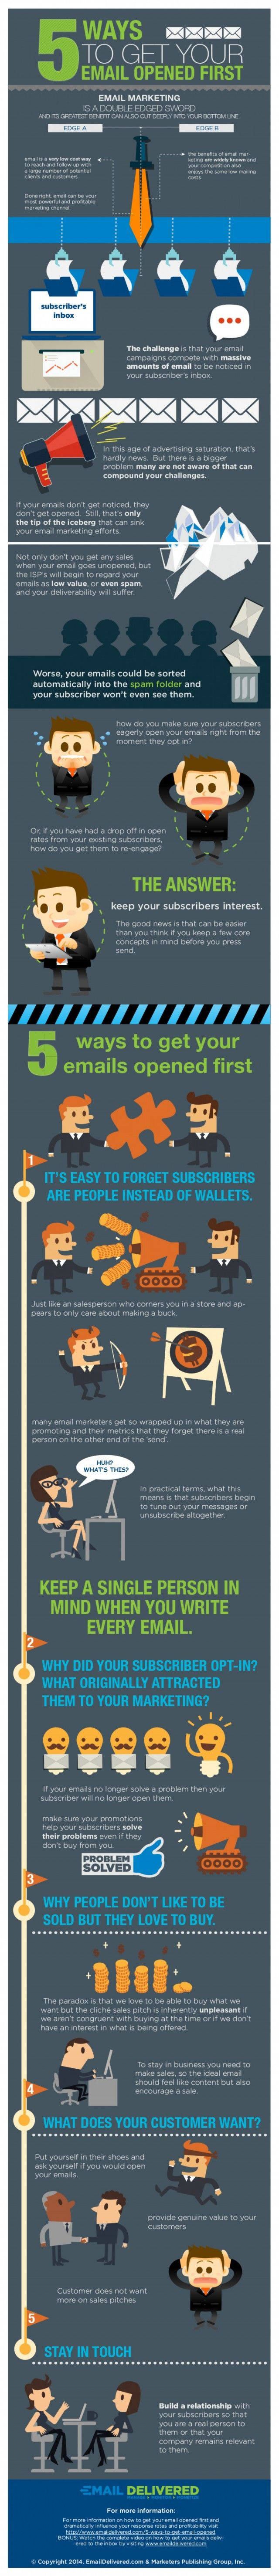 5 Ways to Get Your Email Opened First [infographic] #emailmarketing #infographics #bestpractices